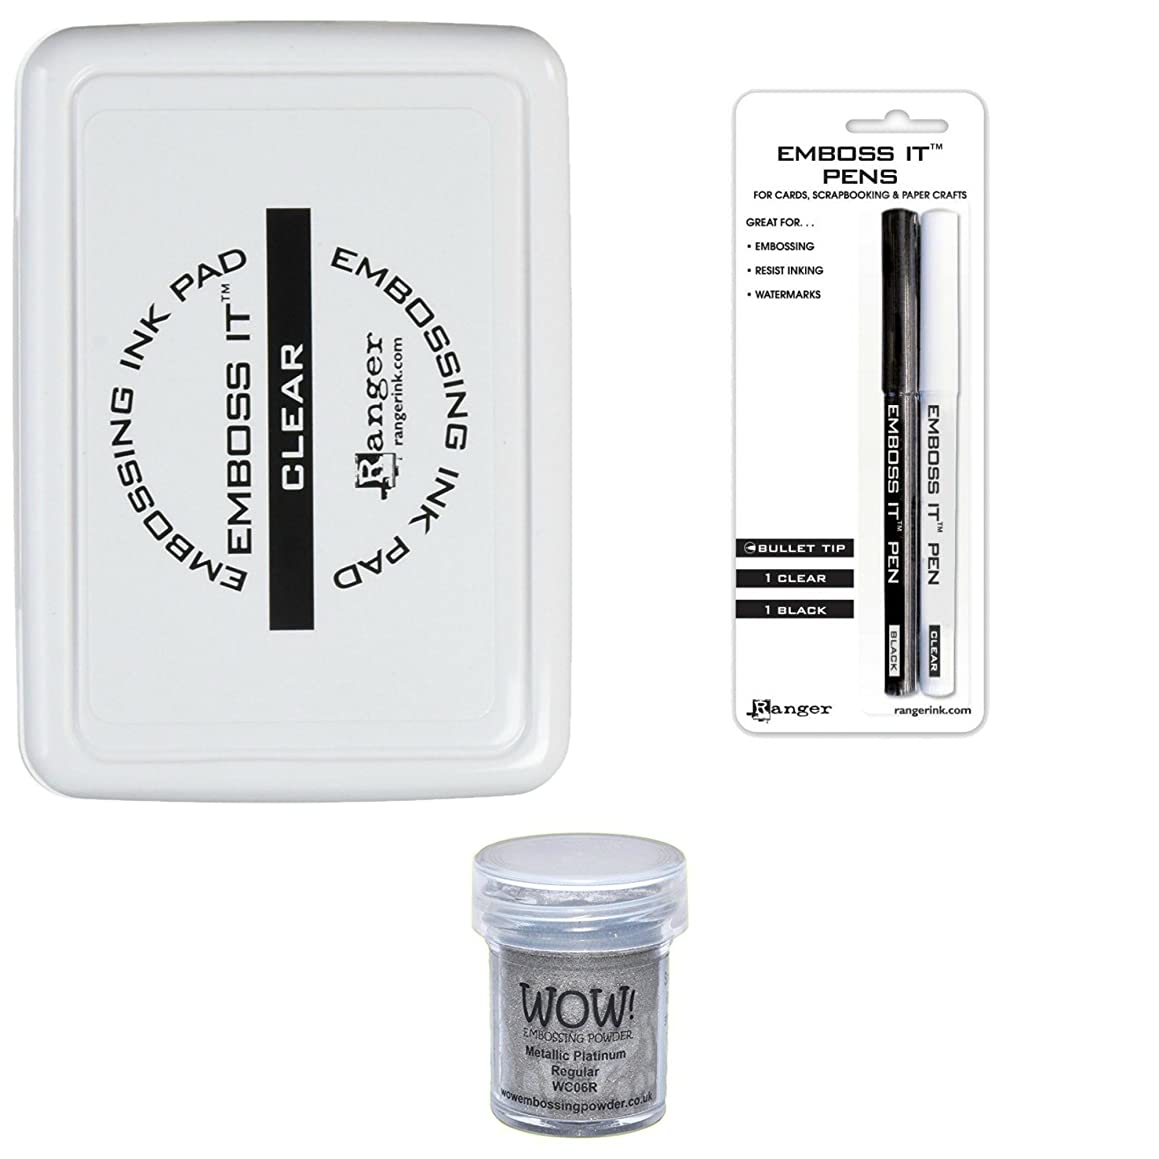 Emboss It Bundle Includes Embossing Ink Pad Clear and Emboss It Pens Bullet Tip 1 Black and 1 Clear + Bonus Wow Embossing Powder - Metallic Color Will Vary